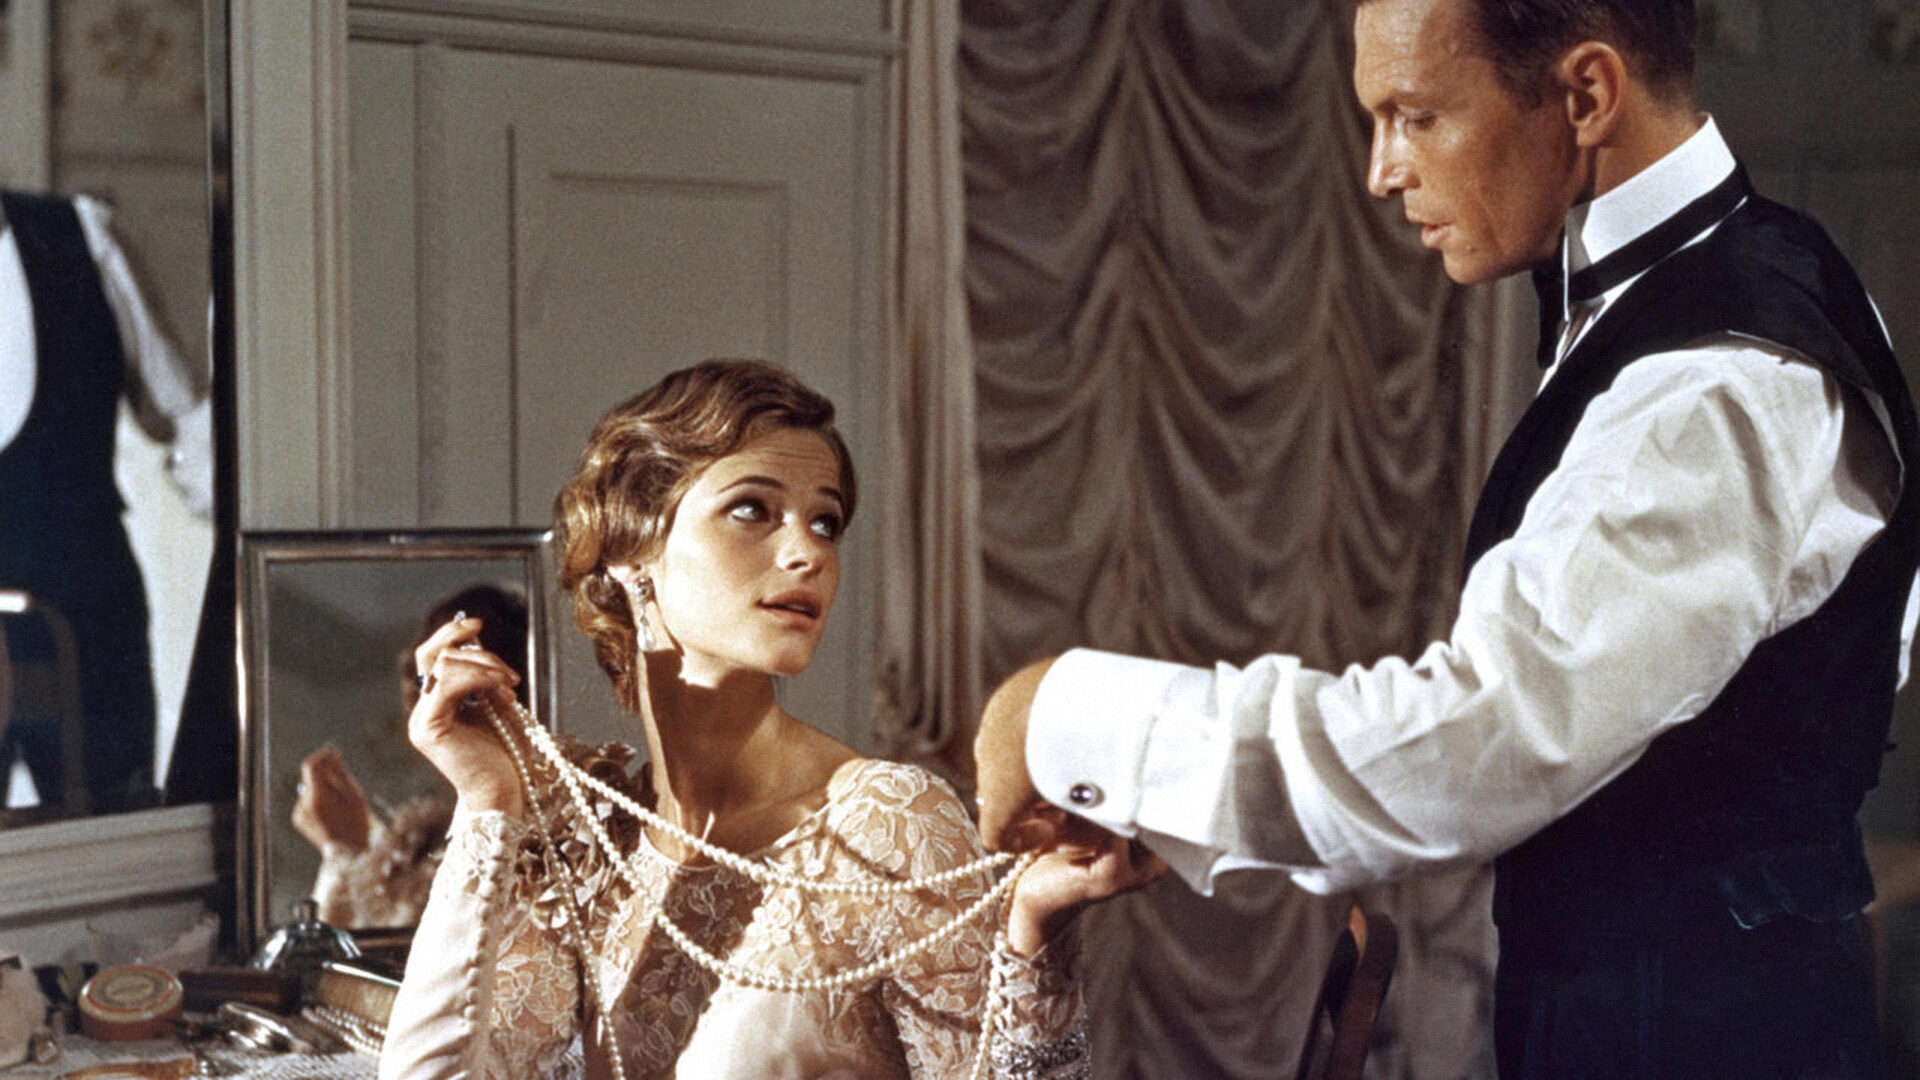 still from The Damned (Luchino Visconti, IT/DE 1969)